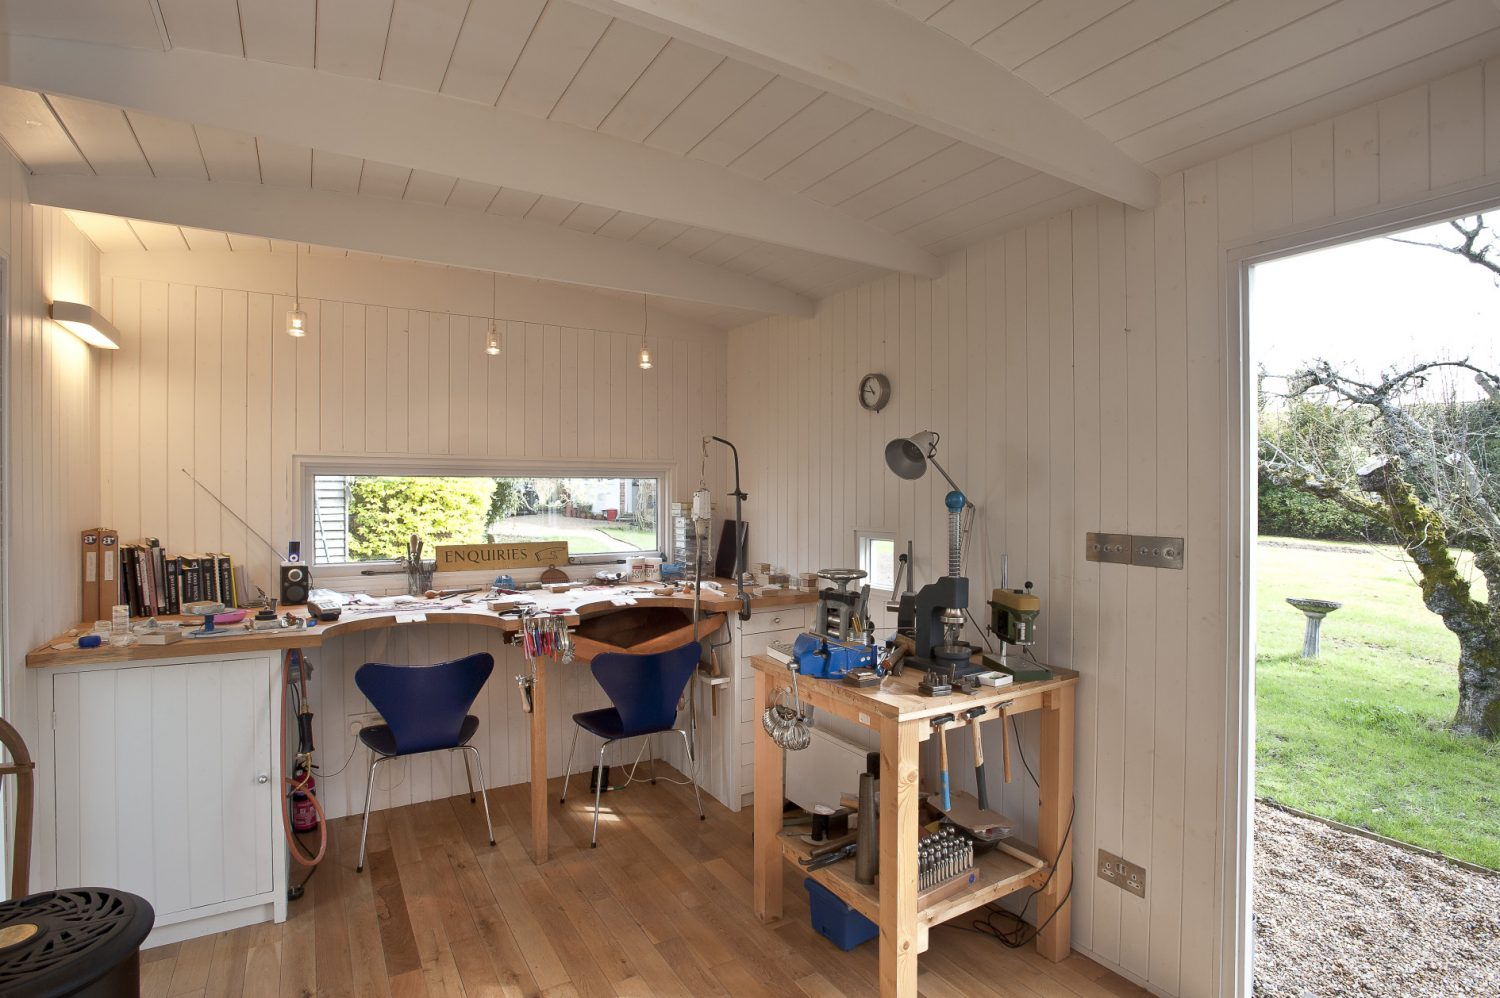 Her studio in the garden, designed by James, is based on an old shepherd's hut